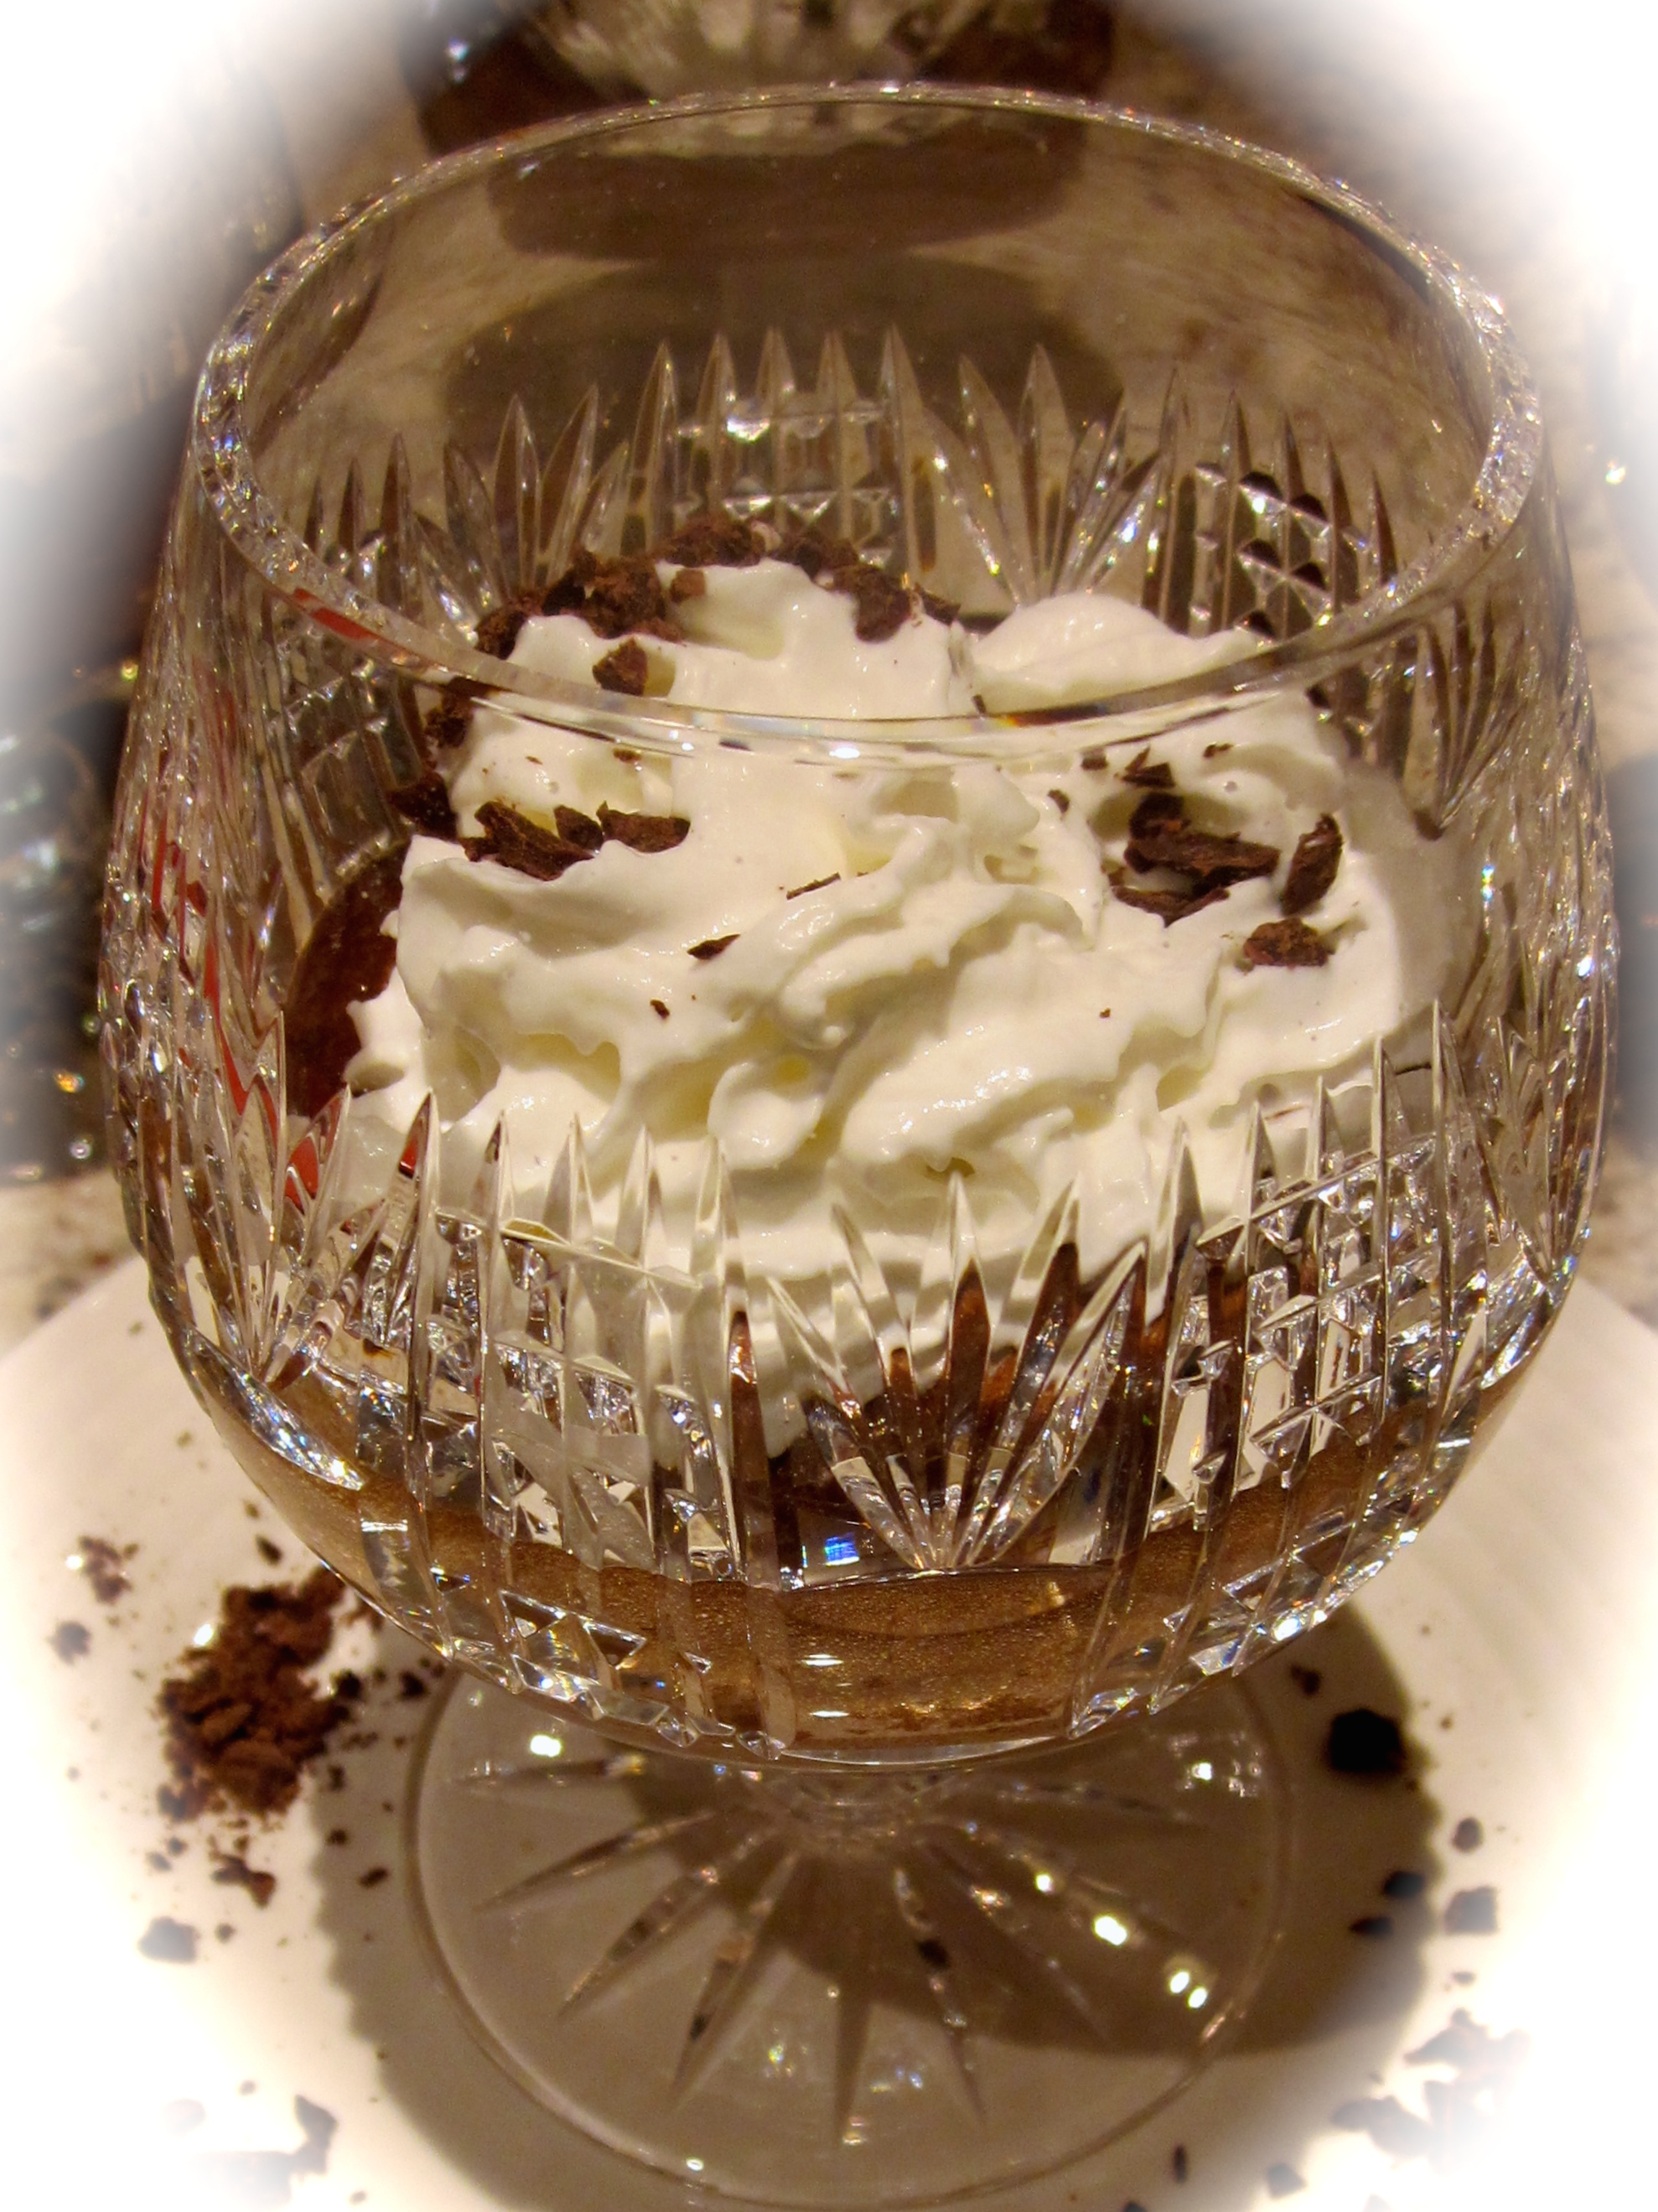 Although we didn't have time to let the mousse sit in the fridge for an hour before decorating, we still produced a pretty dessert.